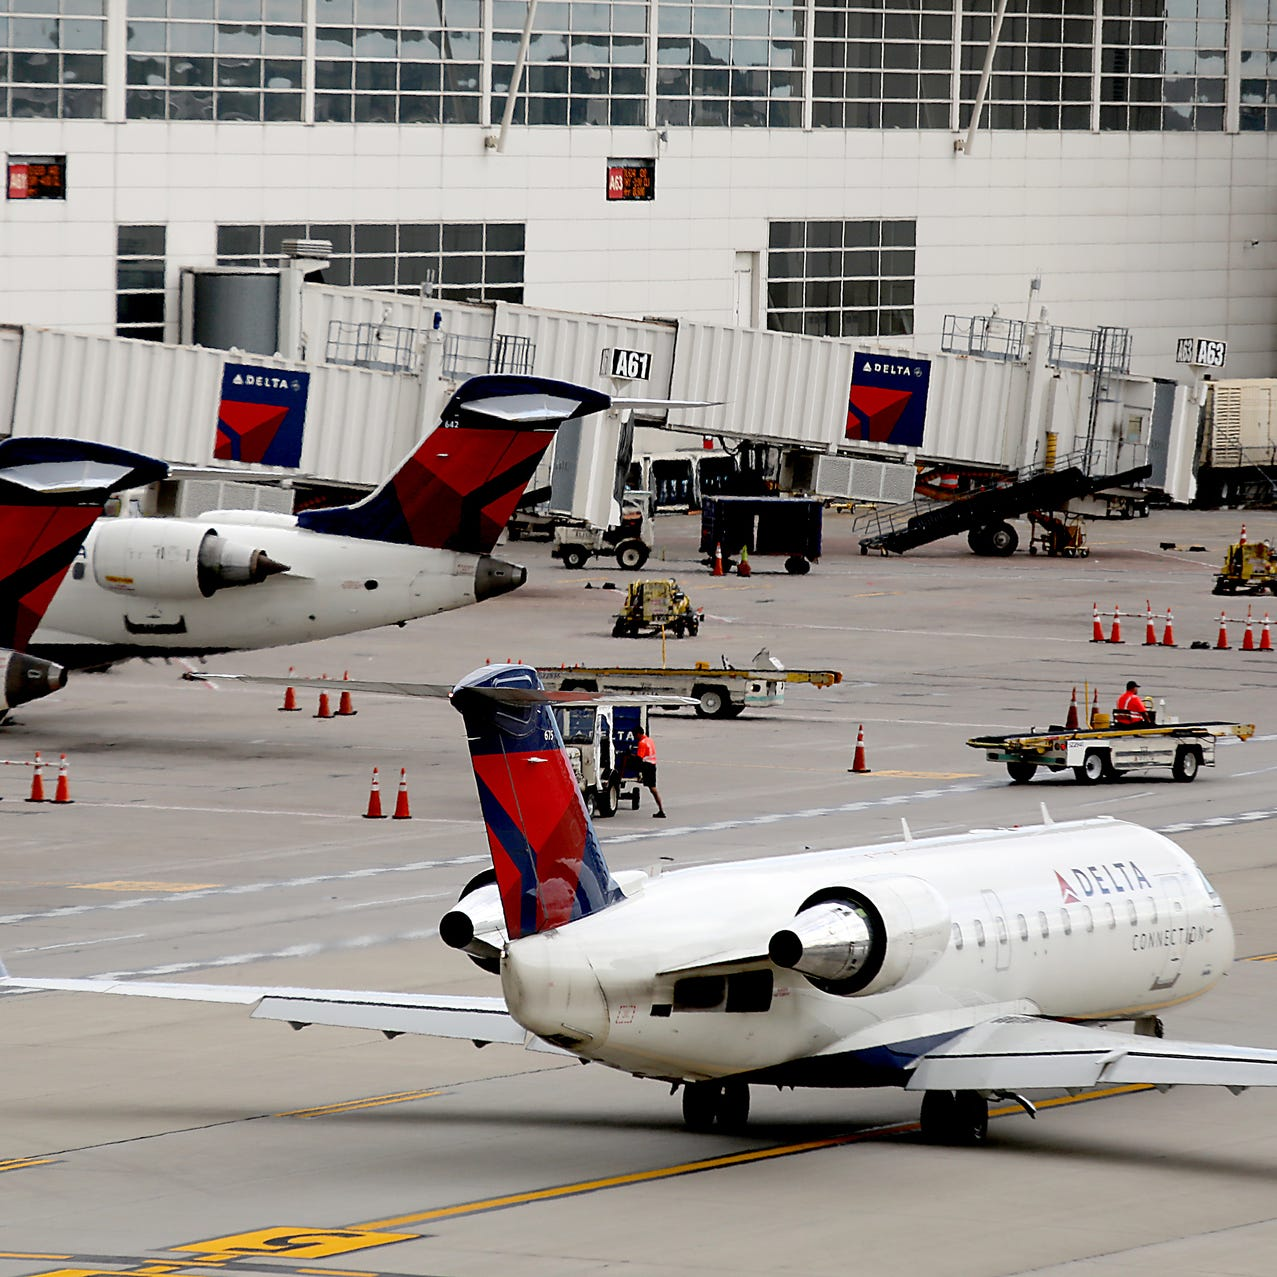 Delta will soon offer free in-flight Wi-Fi to all passengers